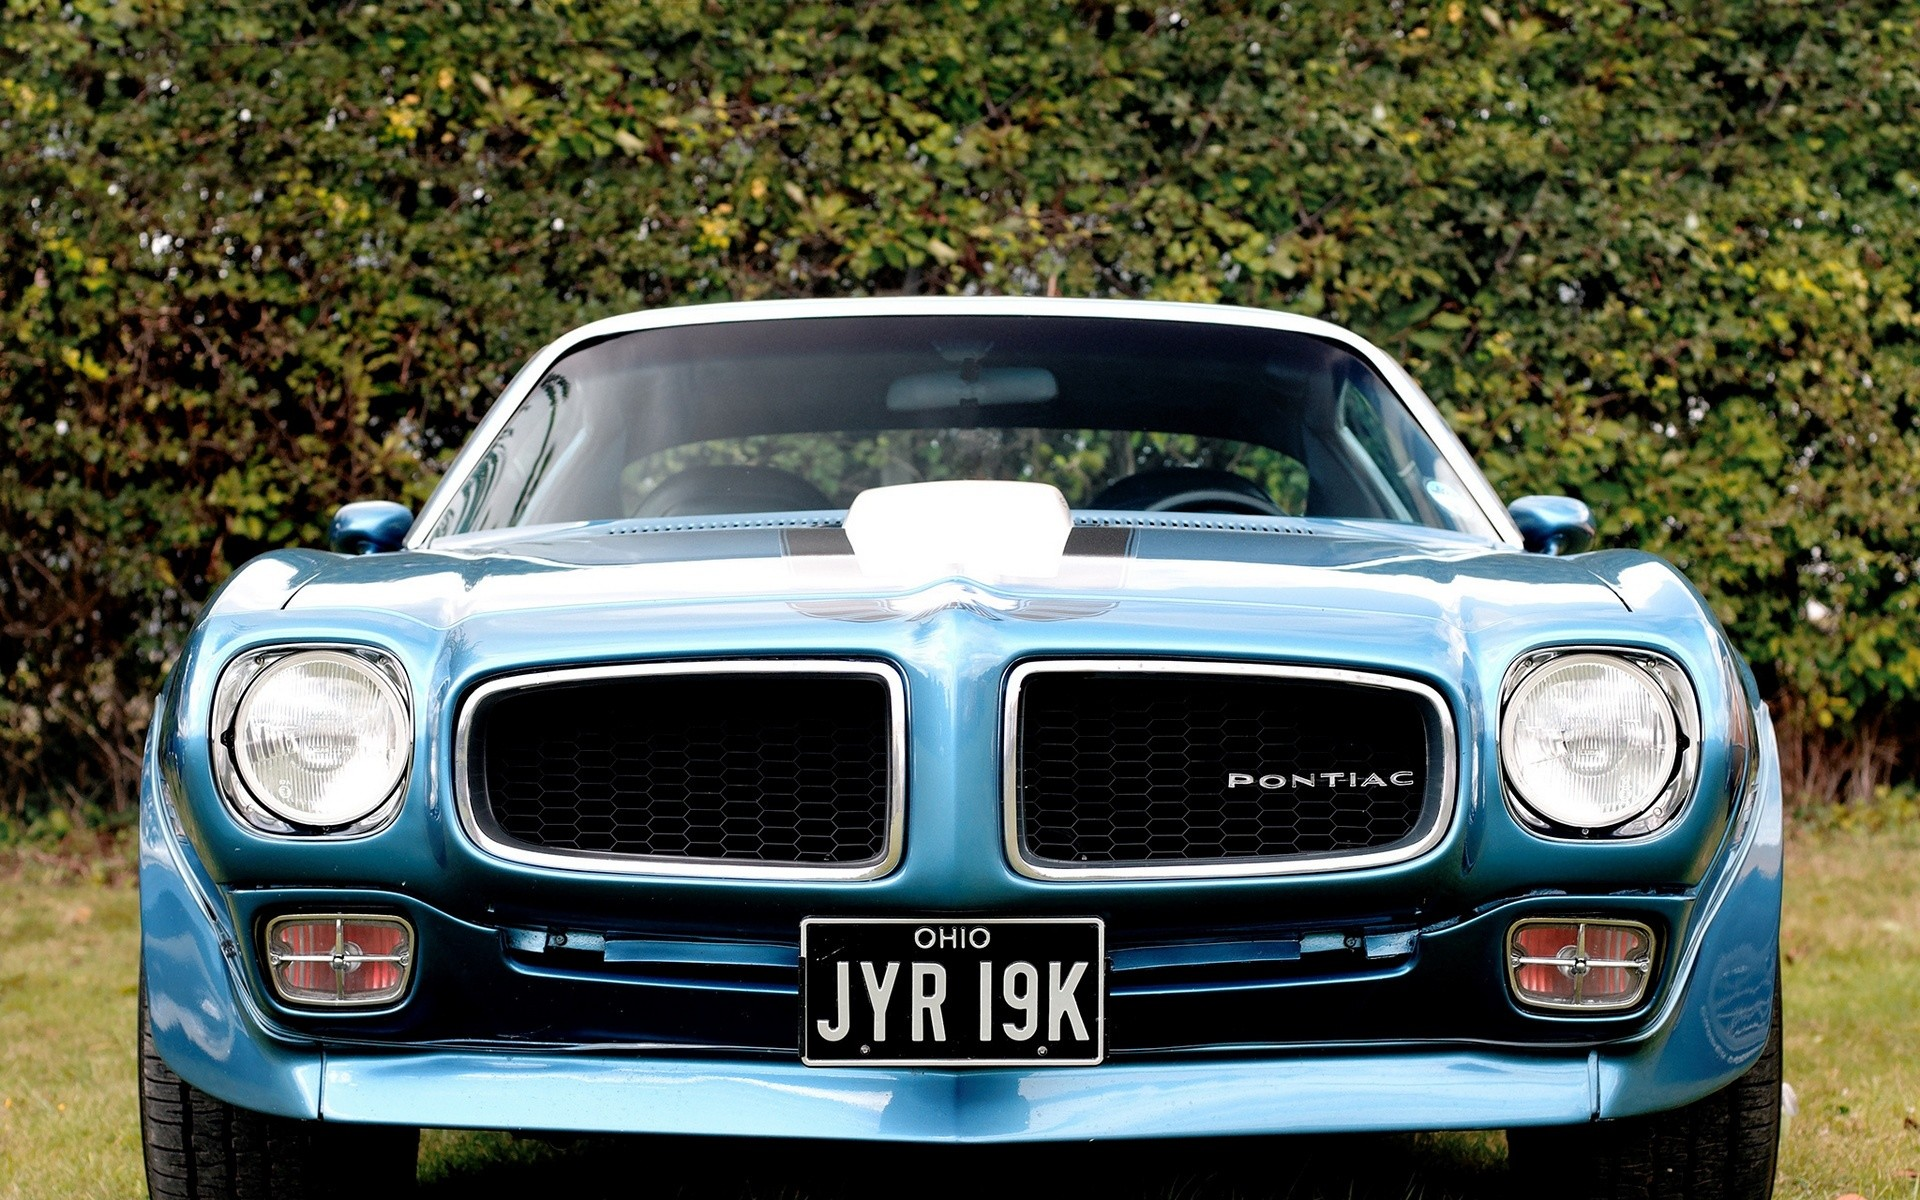 1920x1200 Pontiac Firebird Trans Am HD Wallpaper | Background Image |  |  ID:429315 - Wallpaper Abyss